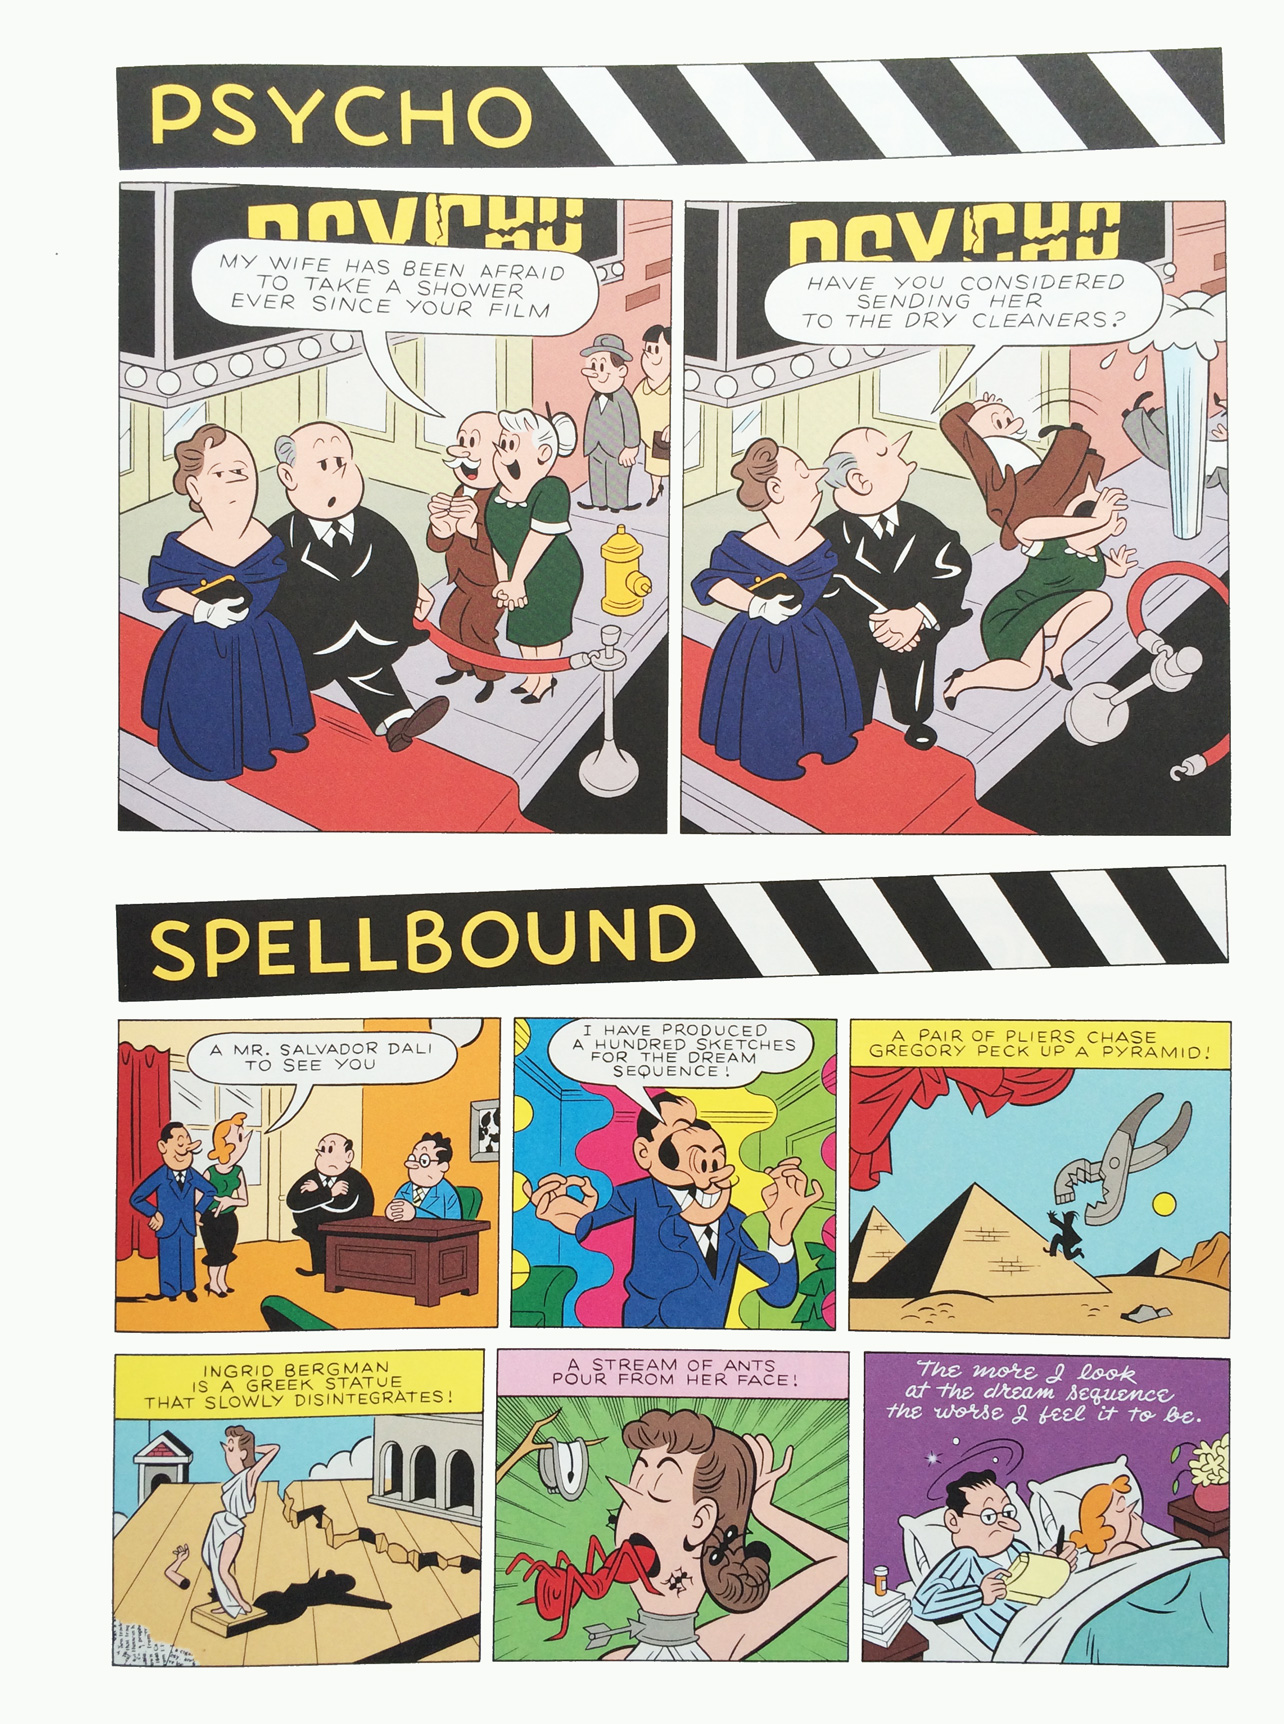 Sir Alfred #3 - Psycho and Spellbound